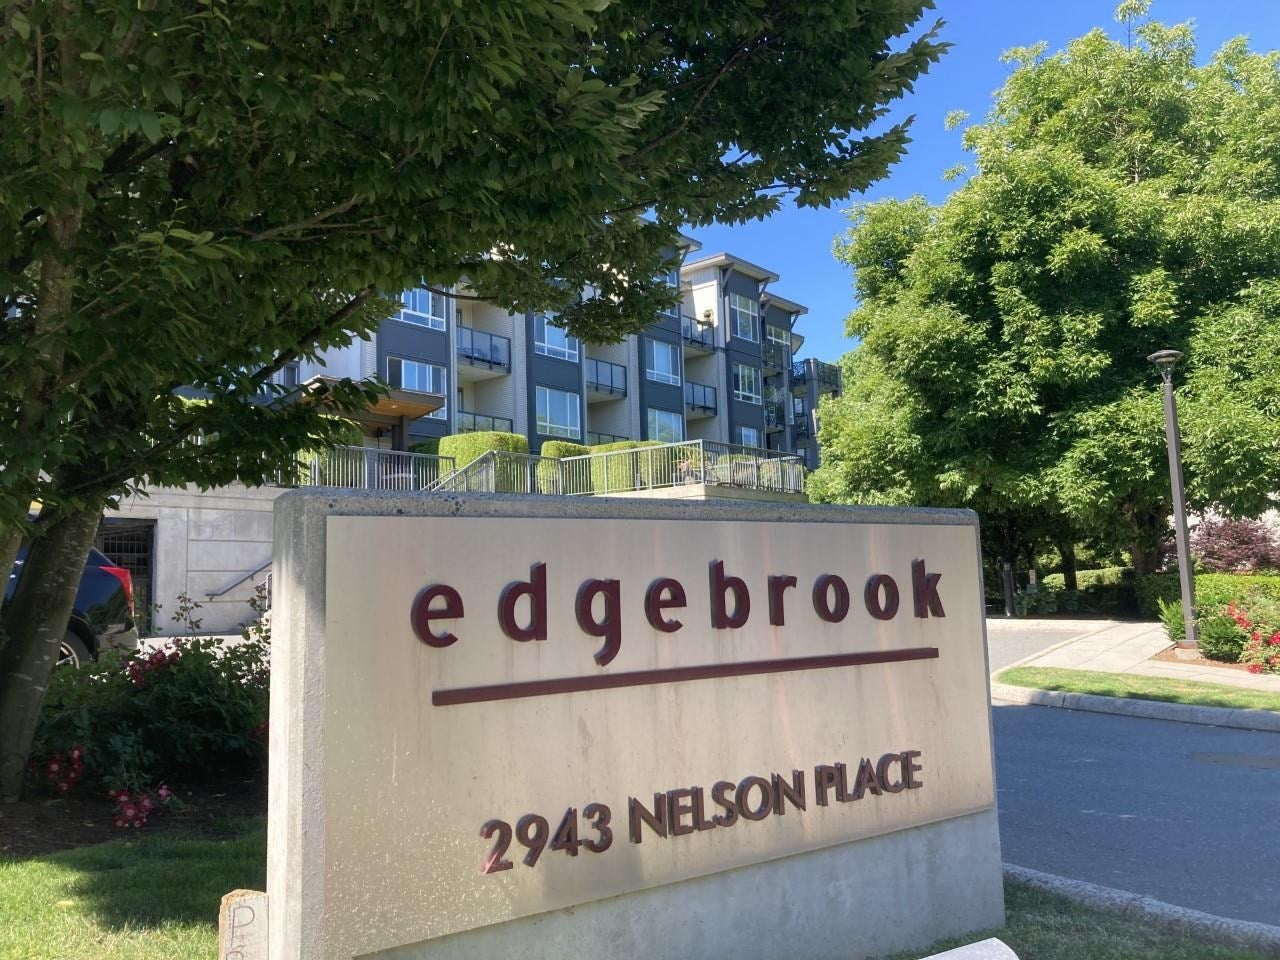 407 2943 NELSON PLACE - Central Abbotsford Apartment/Condo for sale, 2 Bedrooms (R2595157) - #1